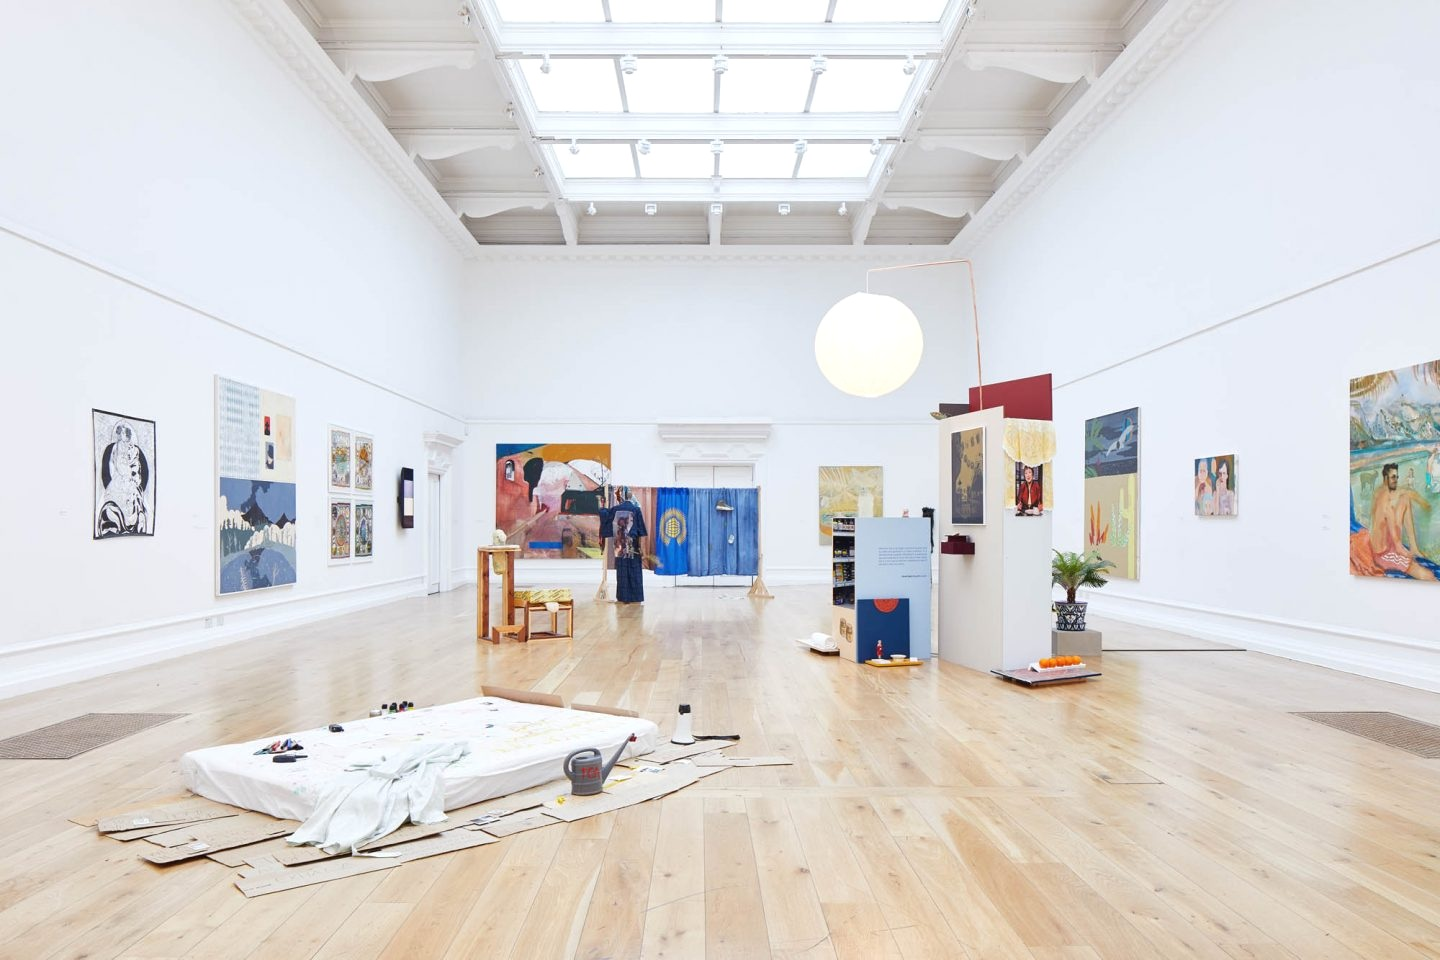 Installation view: Bloomberg New Contemporaries, South London Gallery, 2018